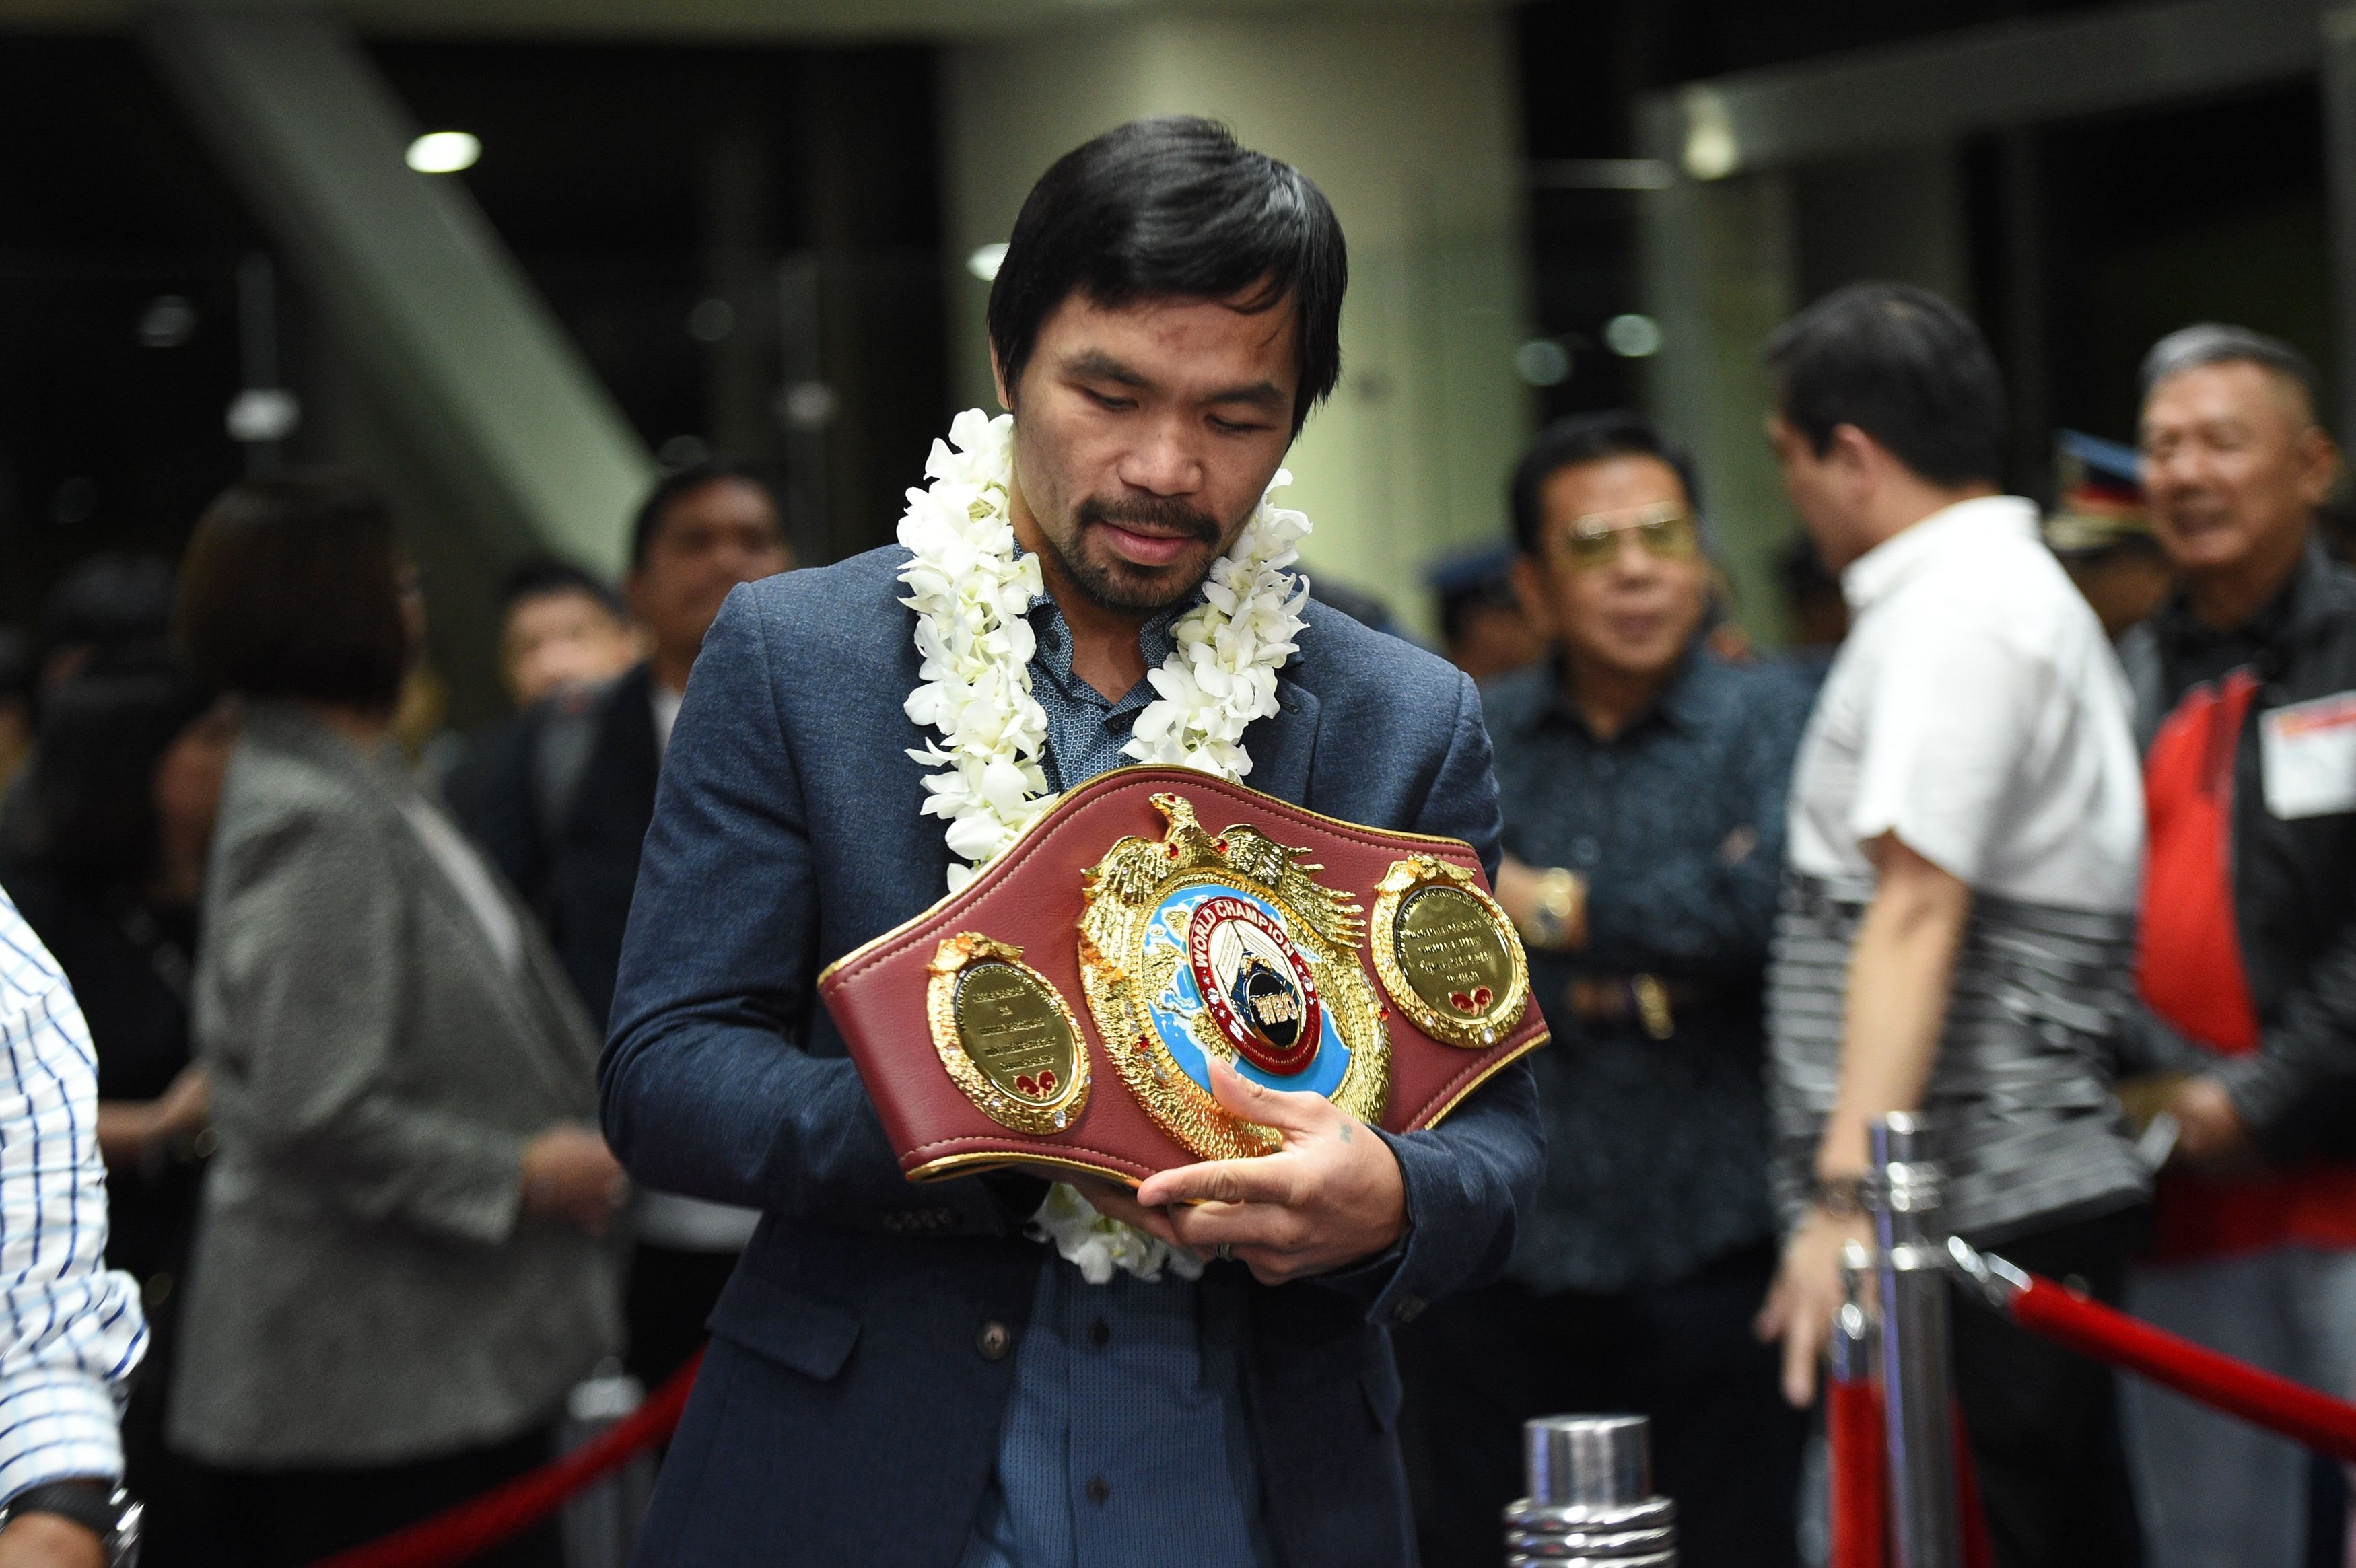 No Amir Khan, no UAE for Manny Pacquiao, says Bob Arum